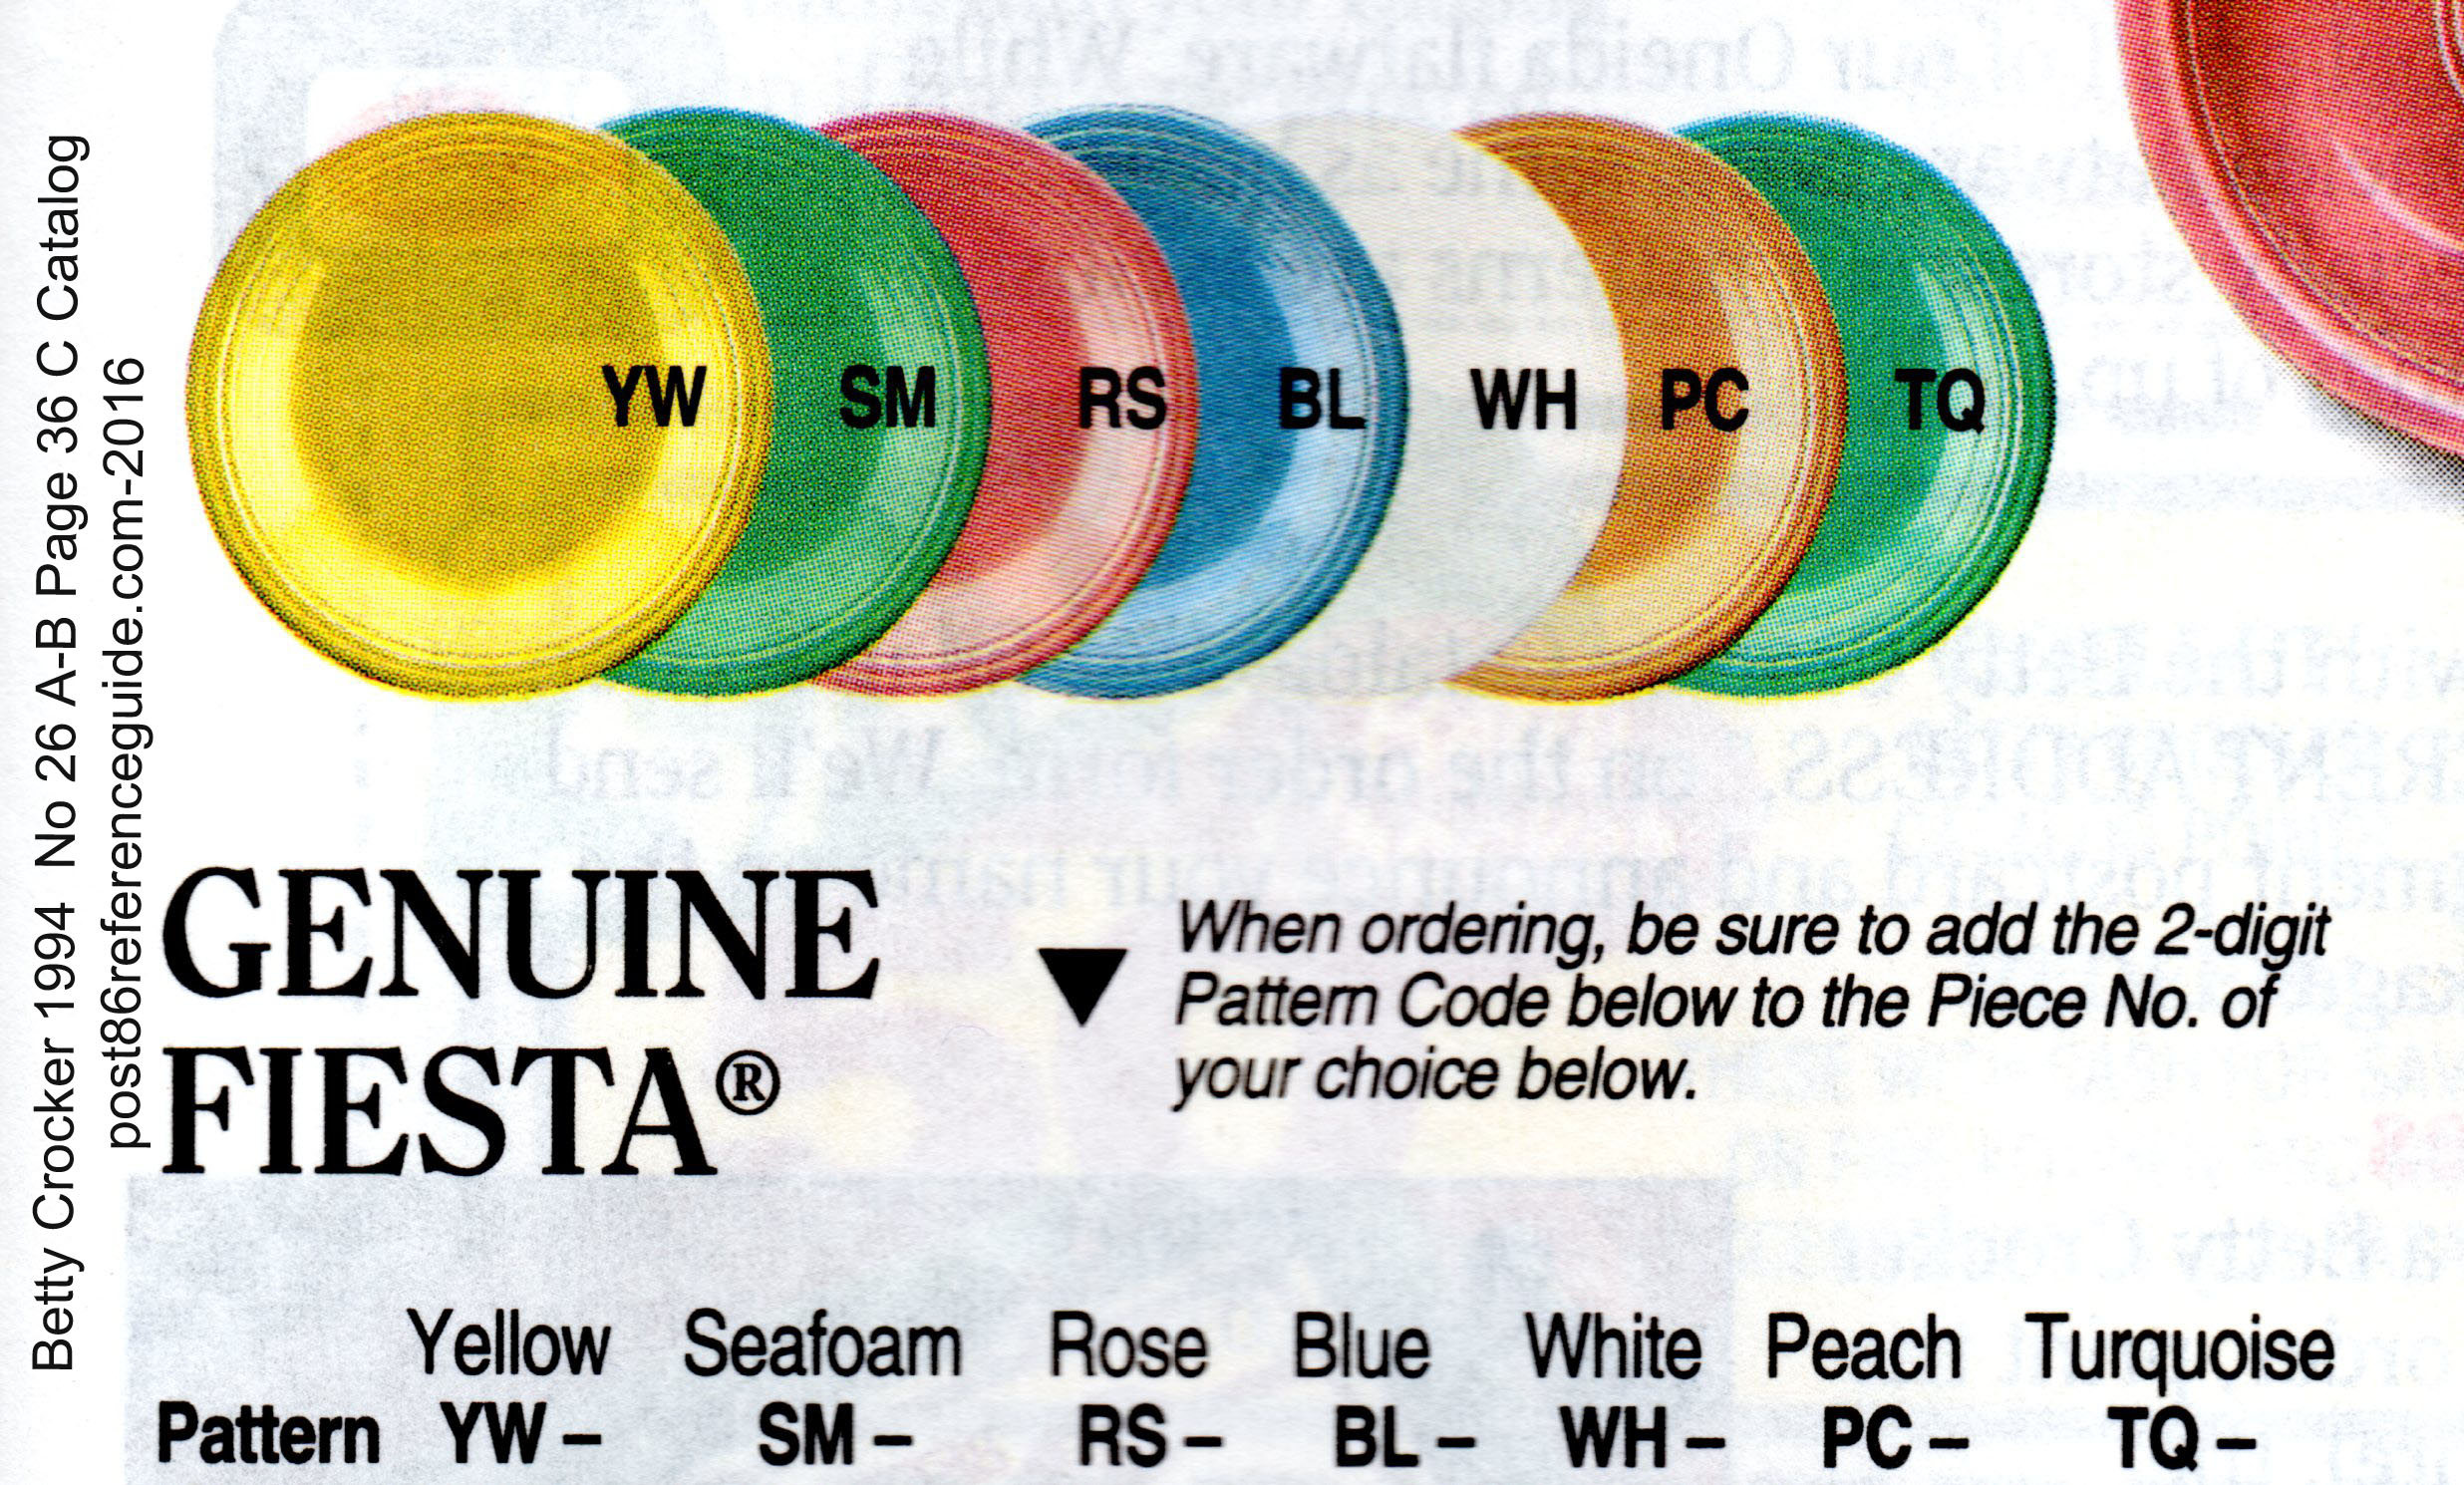 Betty crocker exclusives post 86 reference guide betty crocker 1994 no 26a b page 36c fiesta colors rg nvjuhfo Choice Image